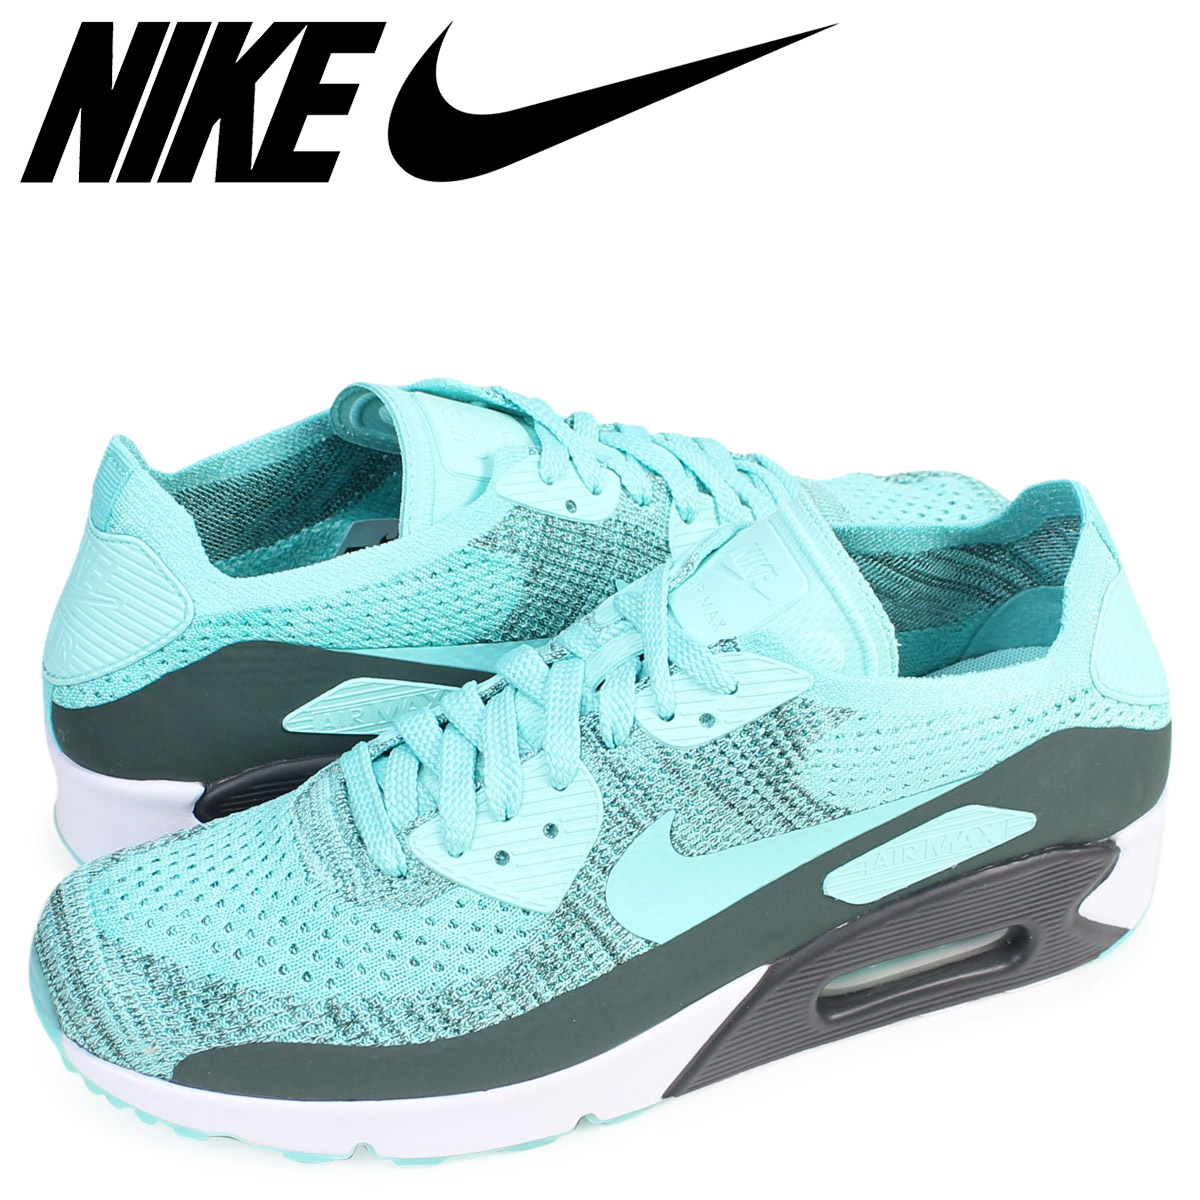 851c6c9082 Nike NIKE Air Max 90 ultra fly knit sneakers AIR MAX 90 ULTRA 2.0 FLYKNIT  875